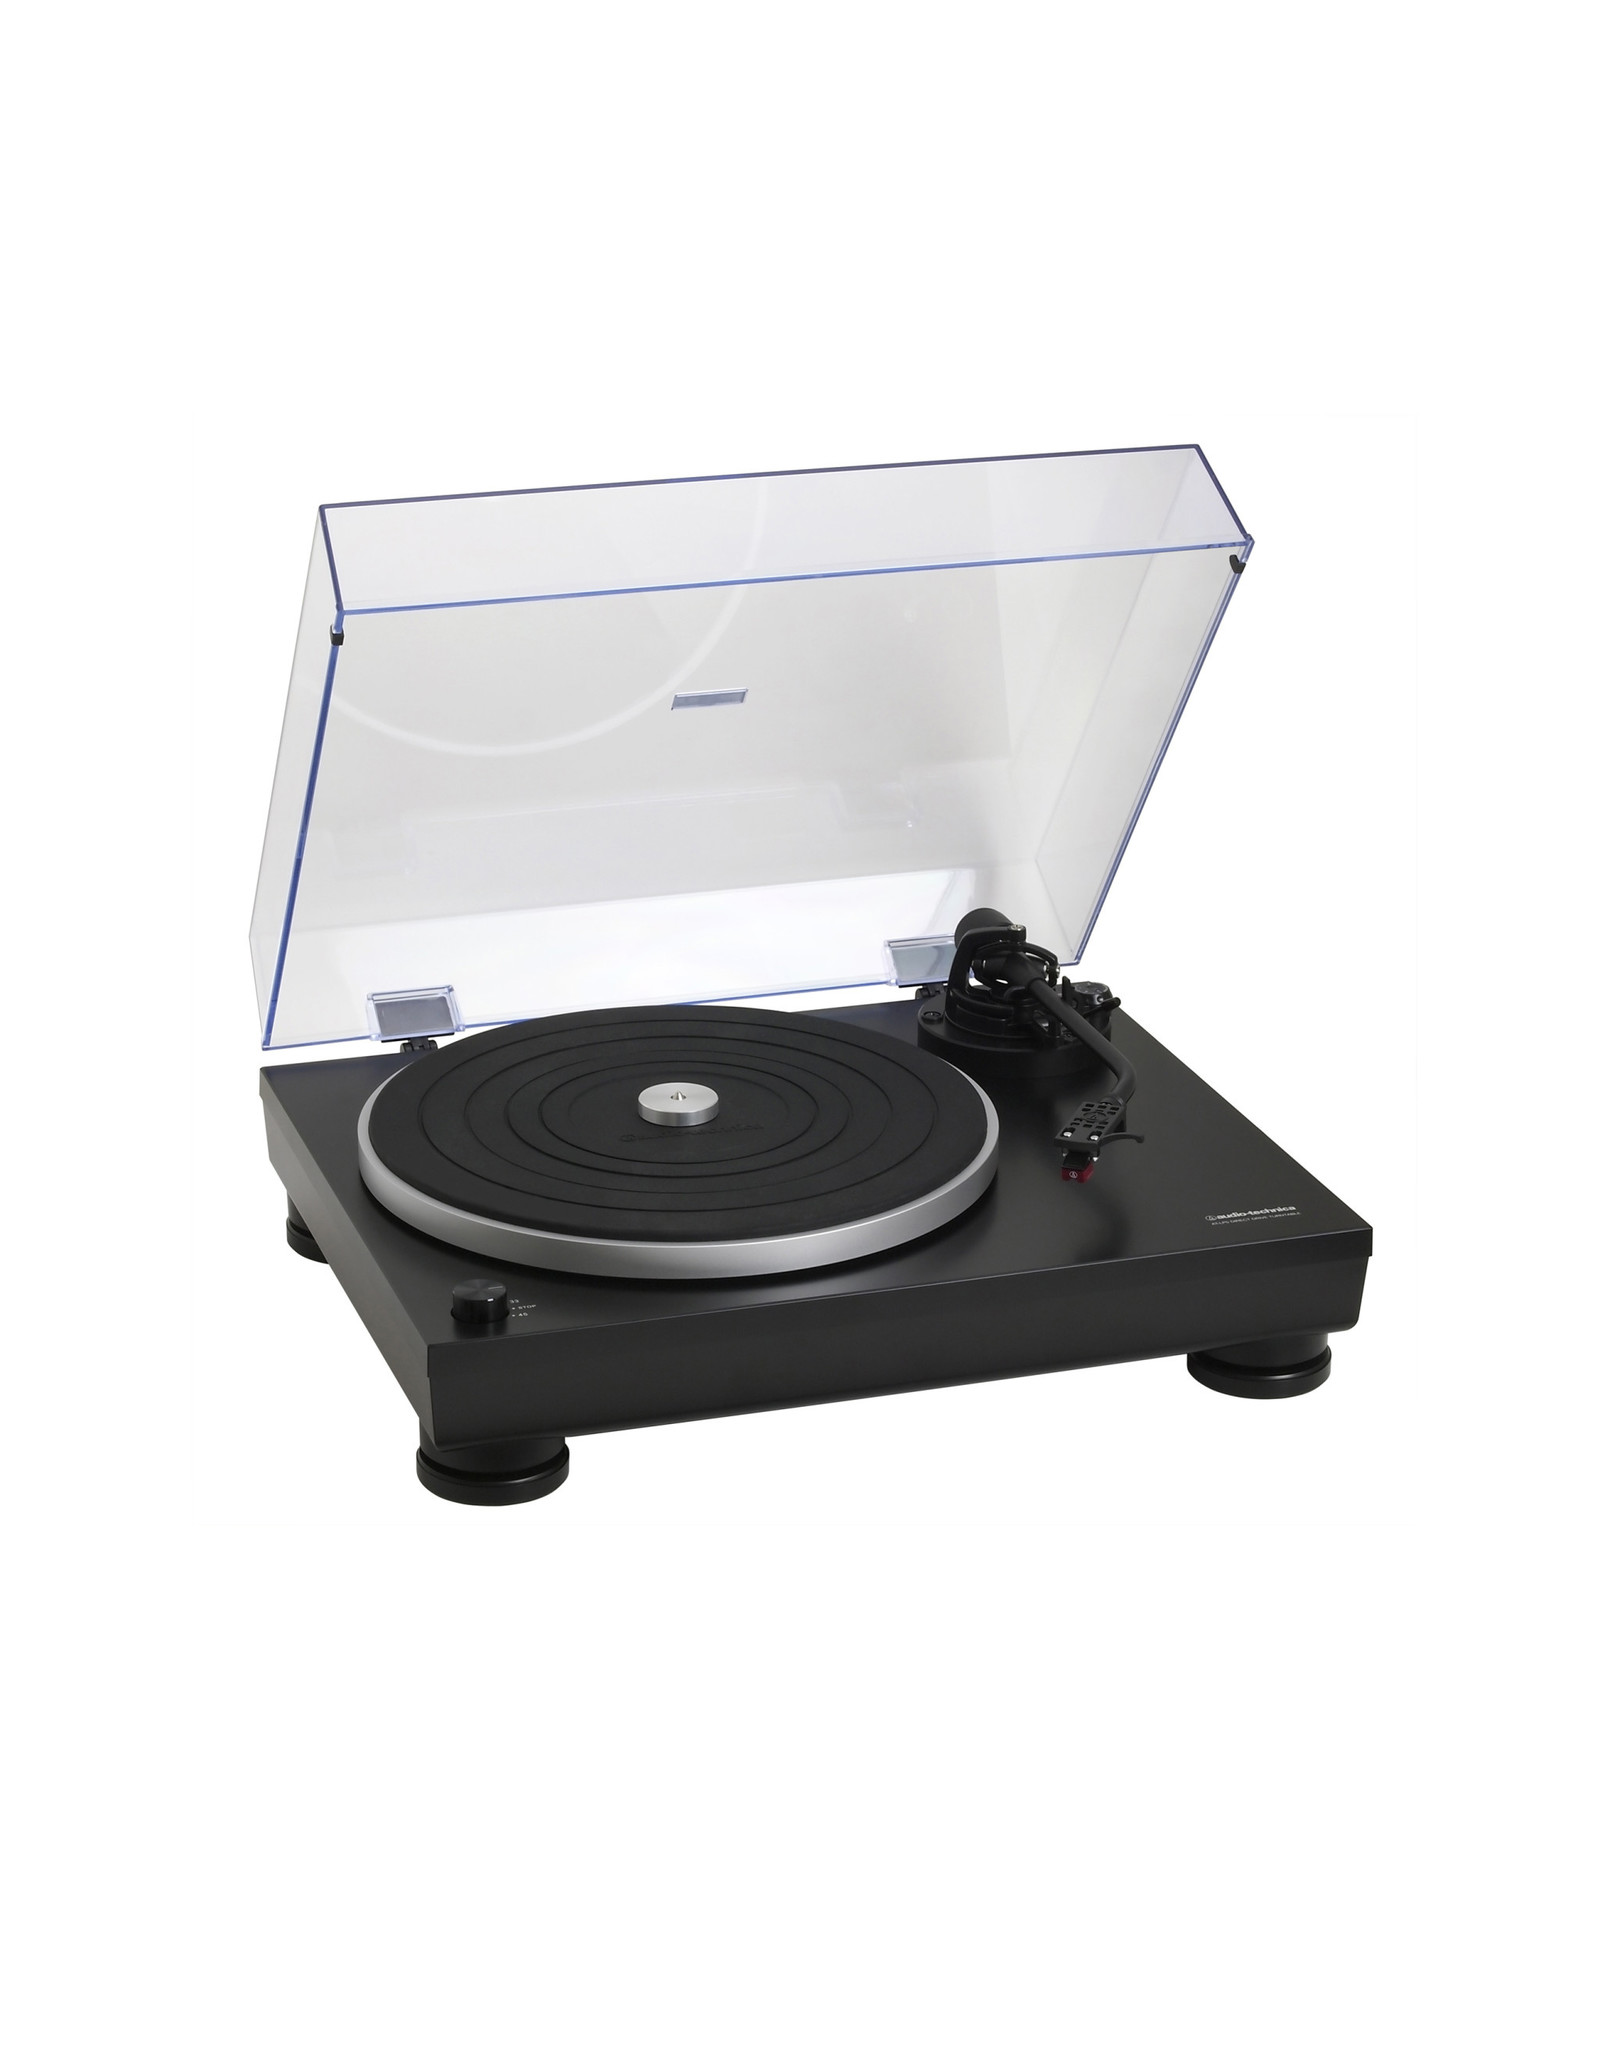 Audio-Technica Audio-Technica AT-LP5 Direct-Drive Turntable